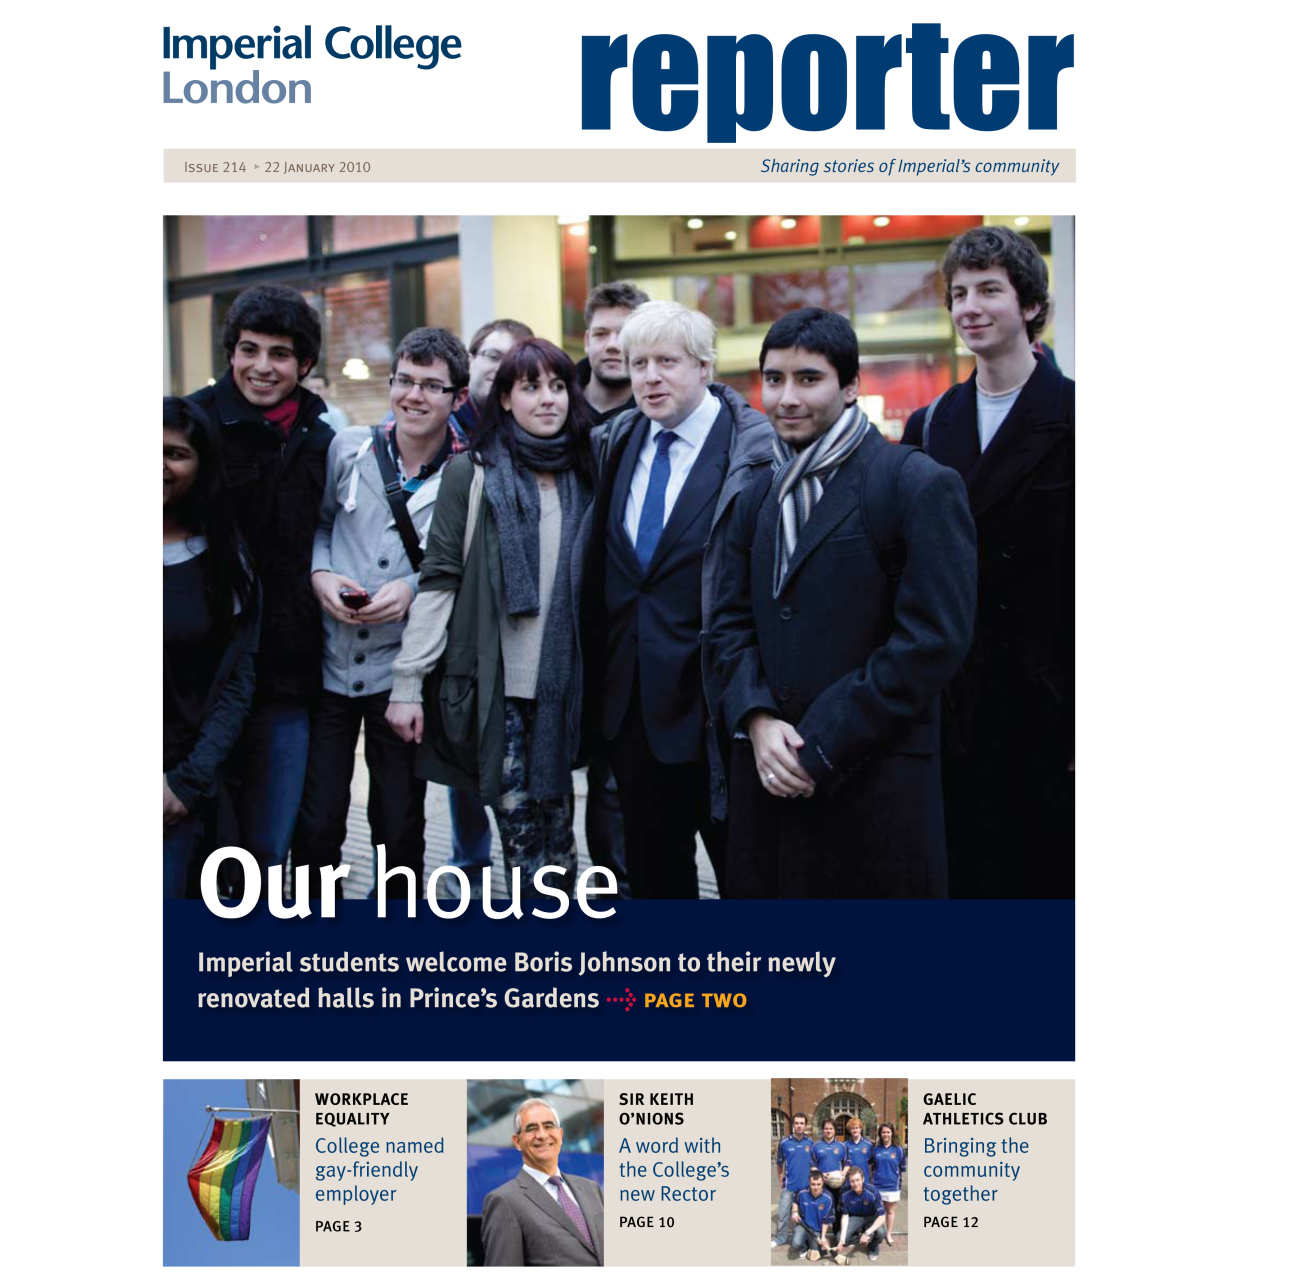 Issue 214 - 22 January 2010